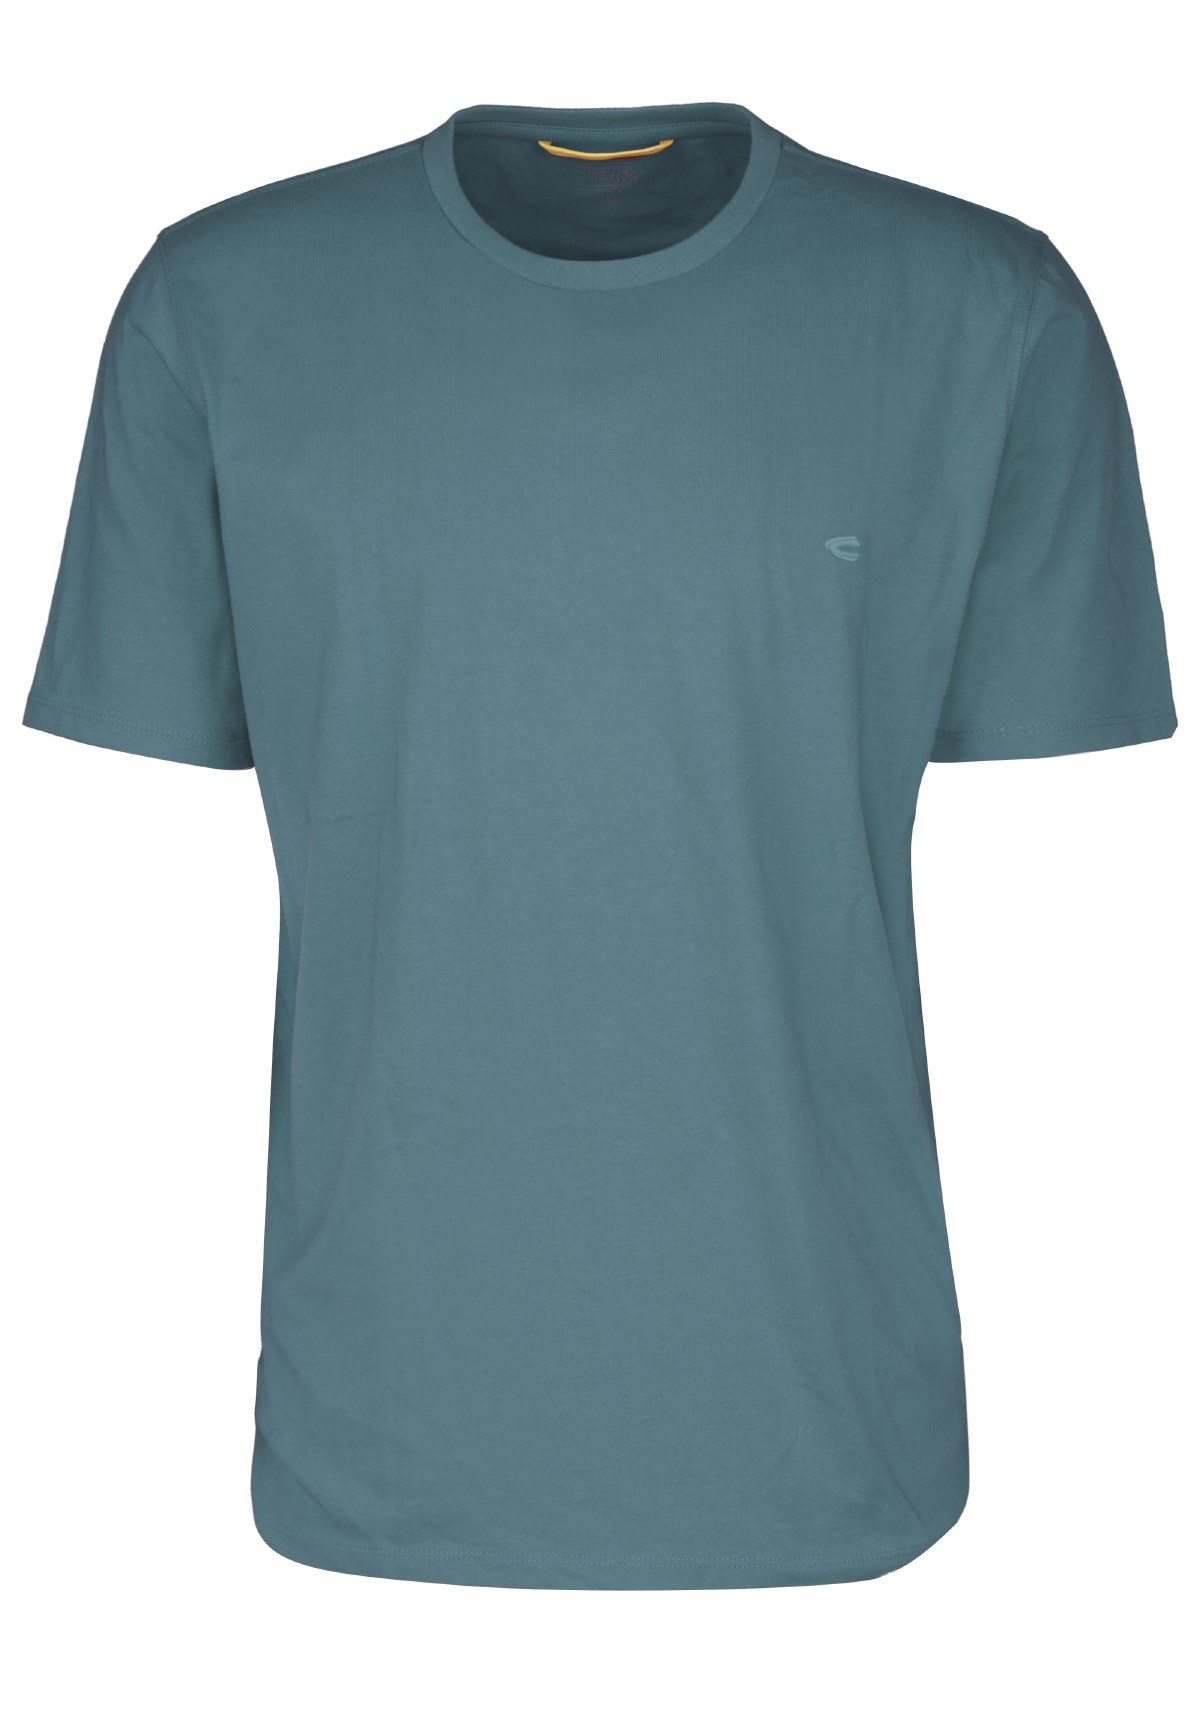 T-Shirt basic petrol L